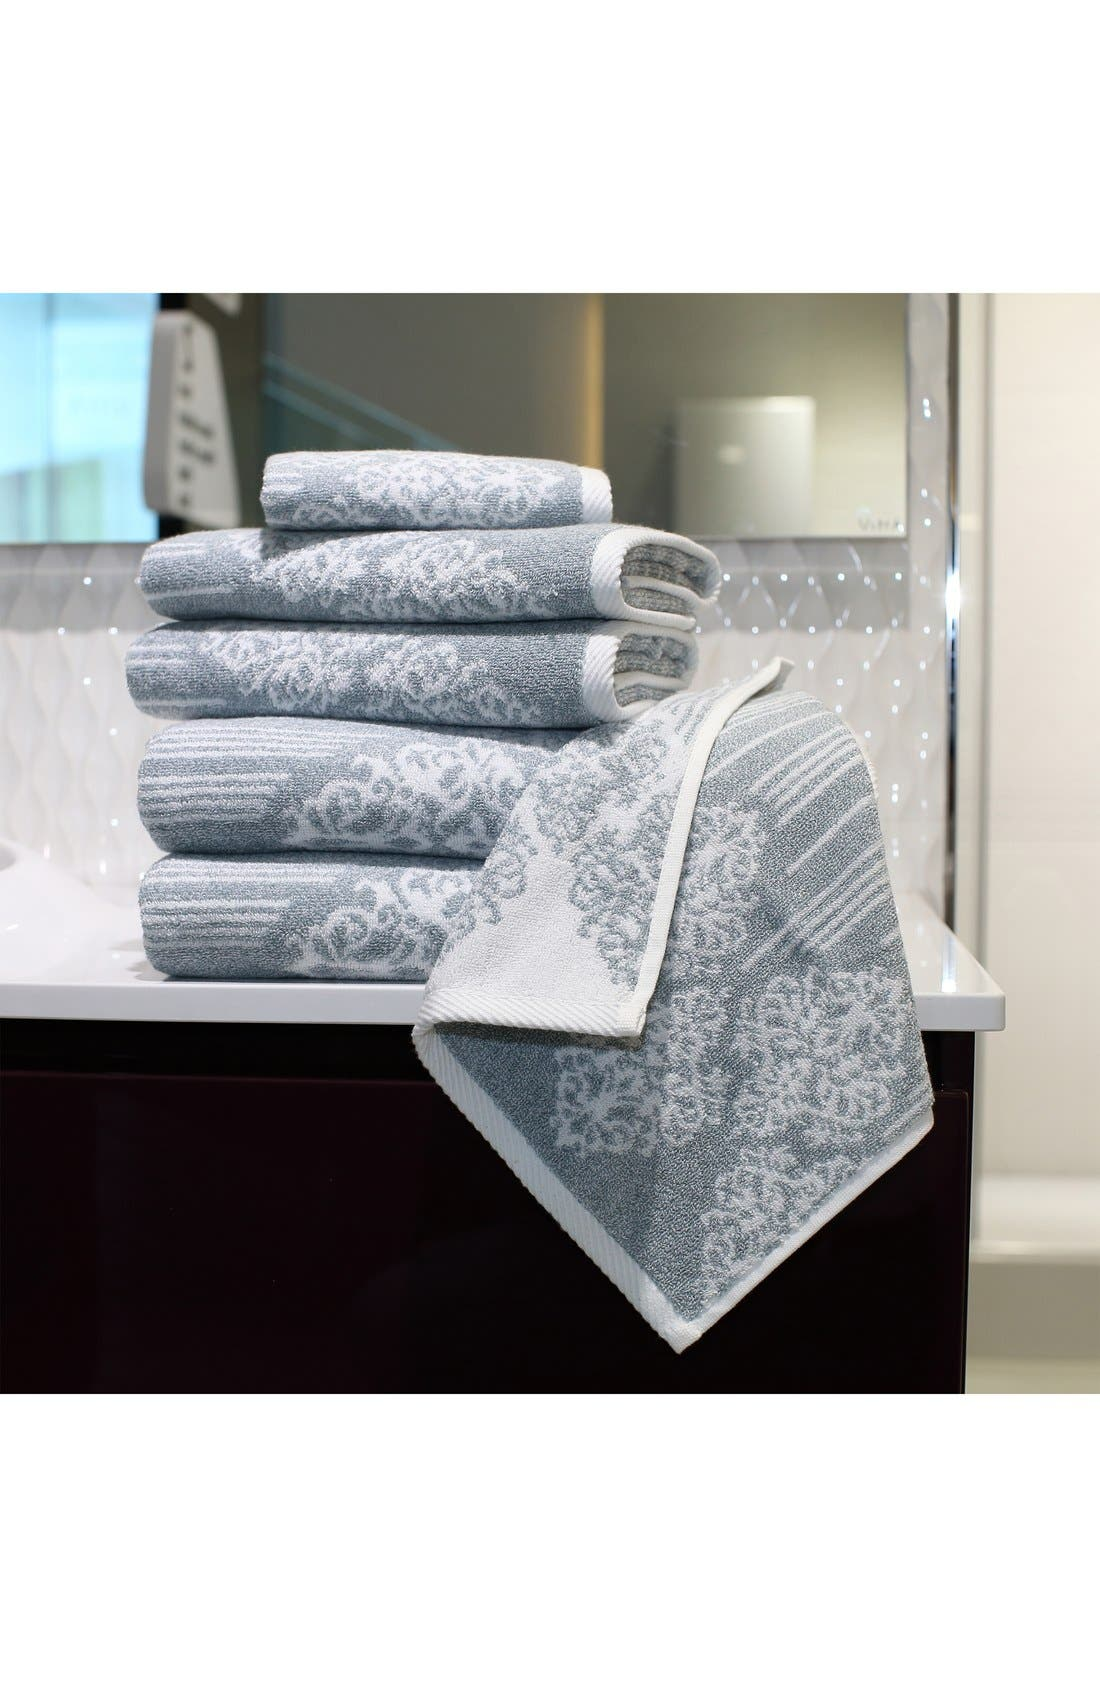 Linum 'Gioia' Bath Towels, Hand Towels & Washcloths,                             Alternate thumbnail 3, color,                             440